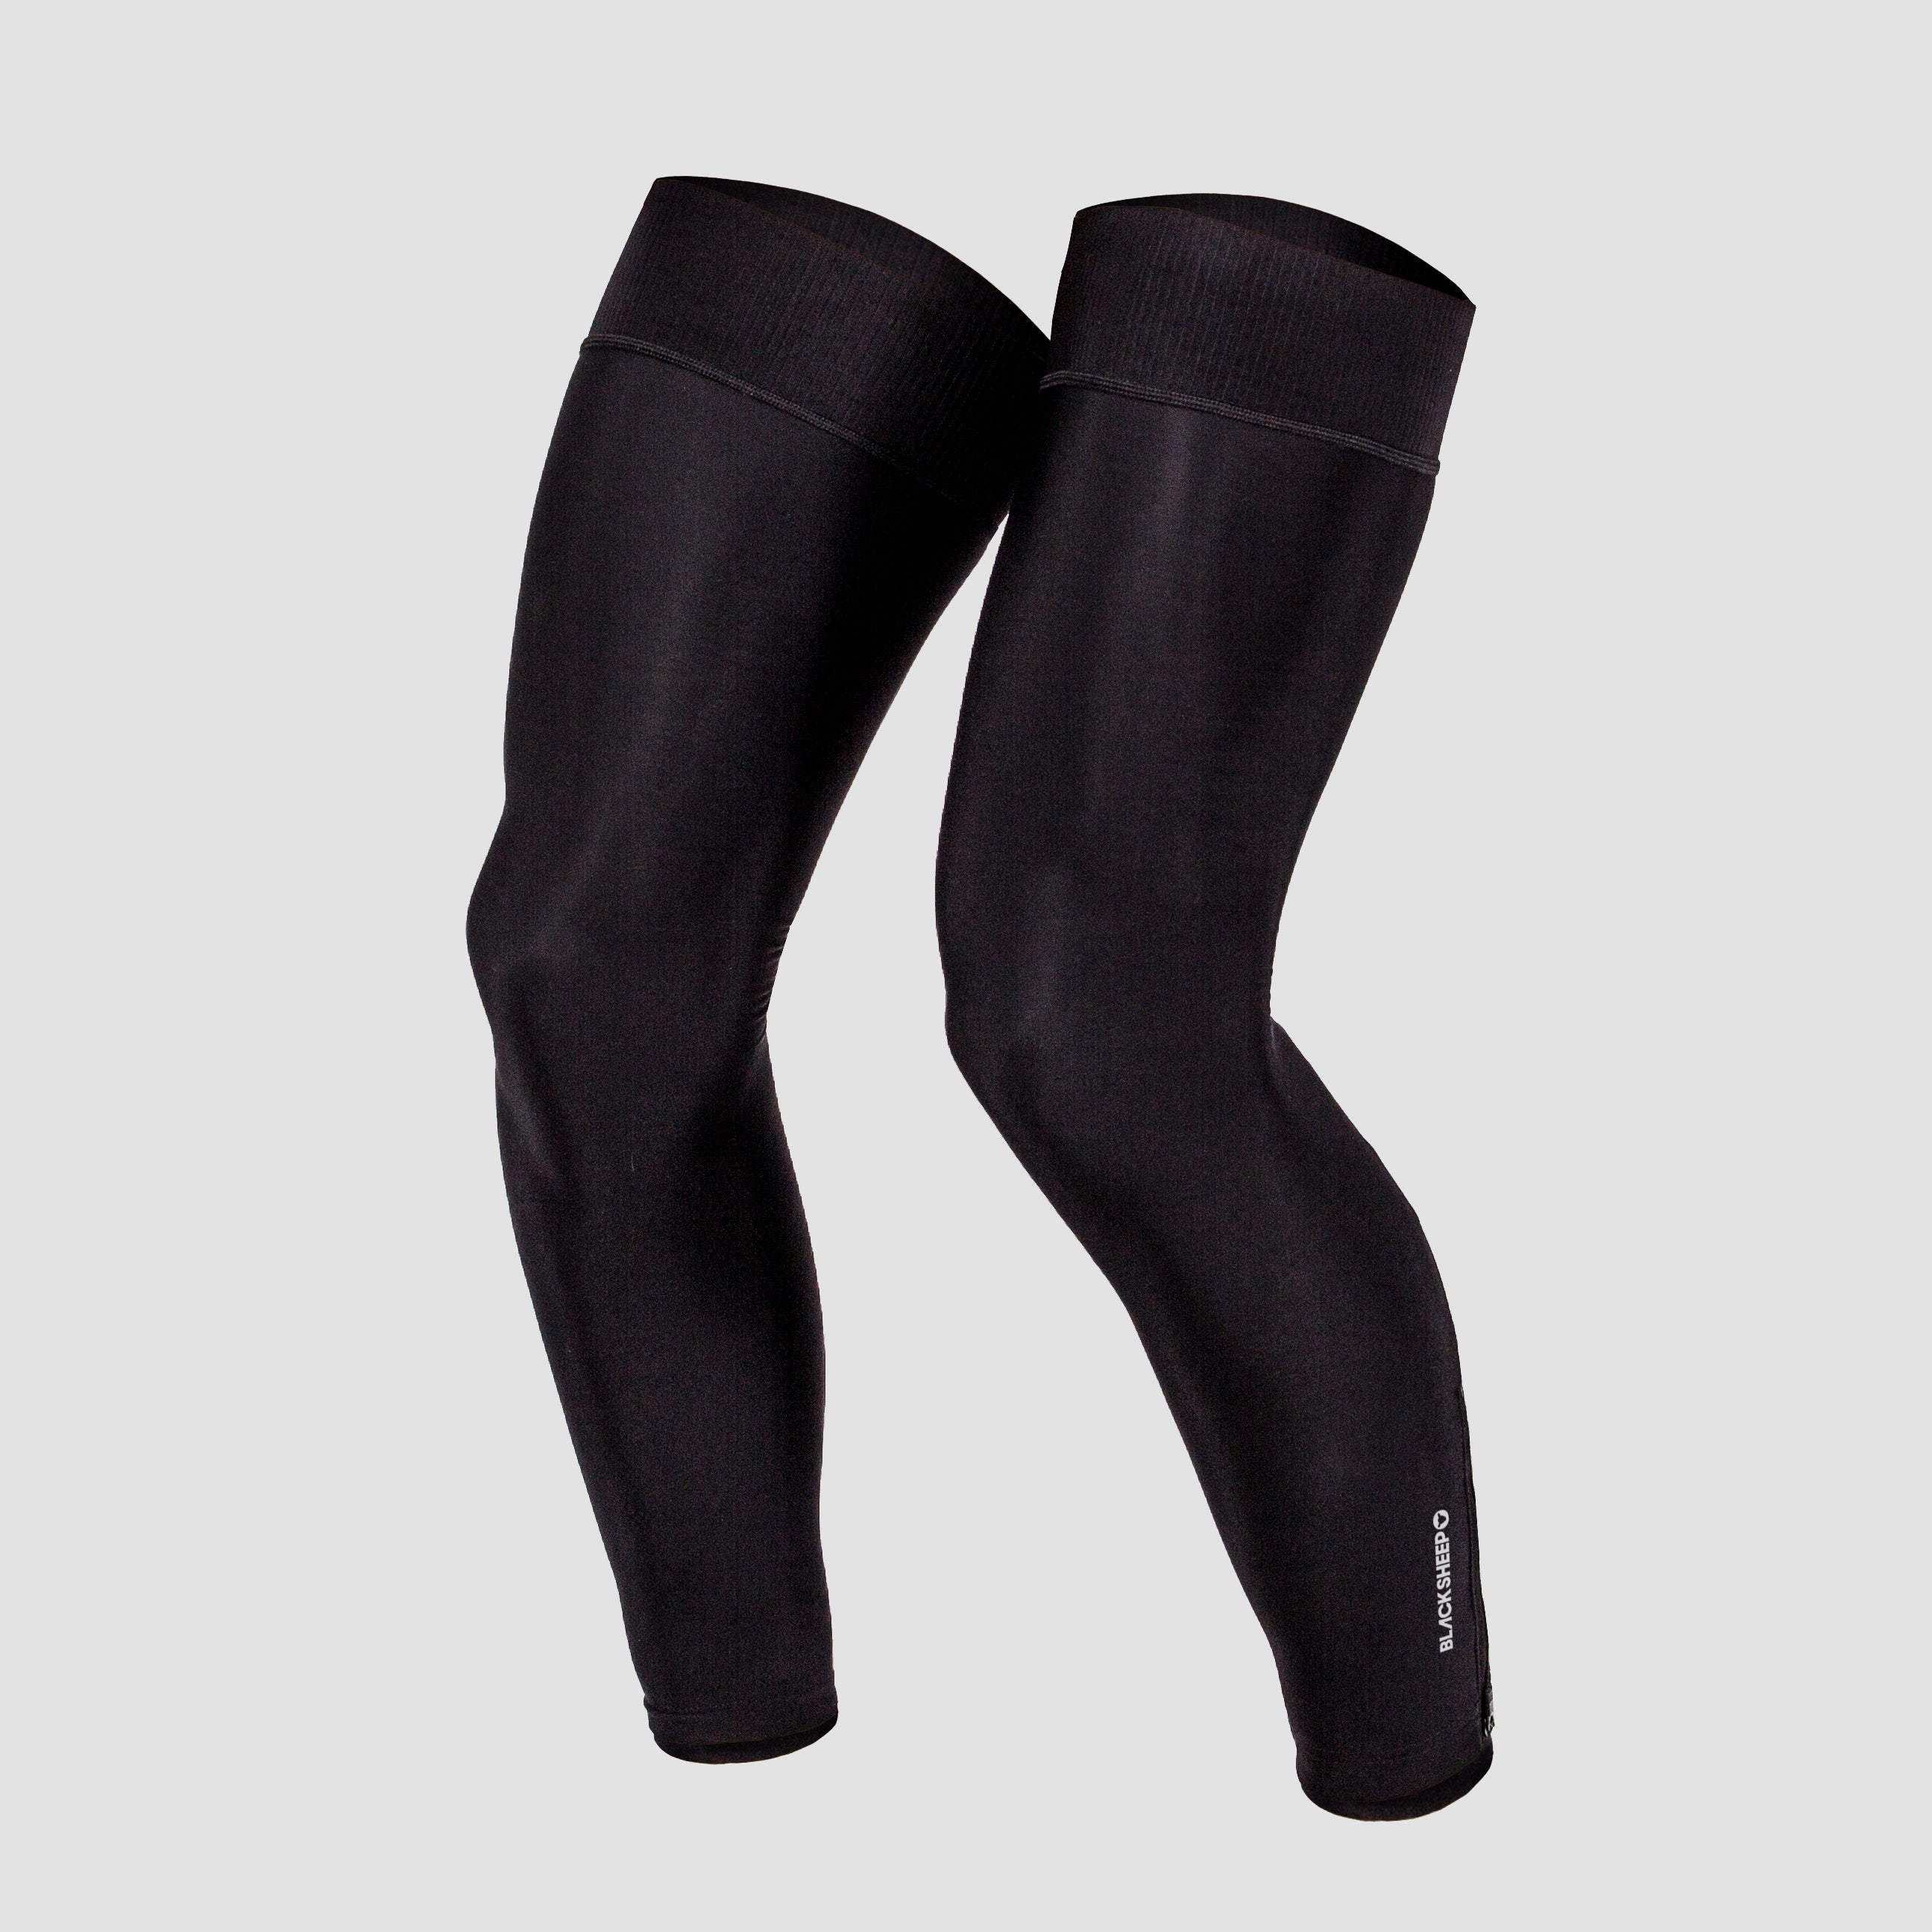 Elements Leg Warmers Black Sheep - Black